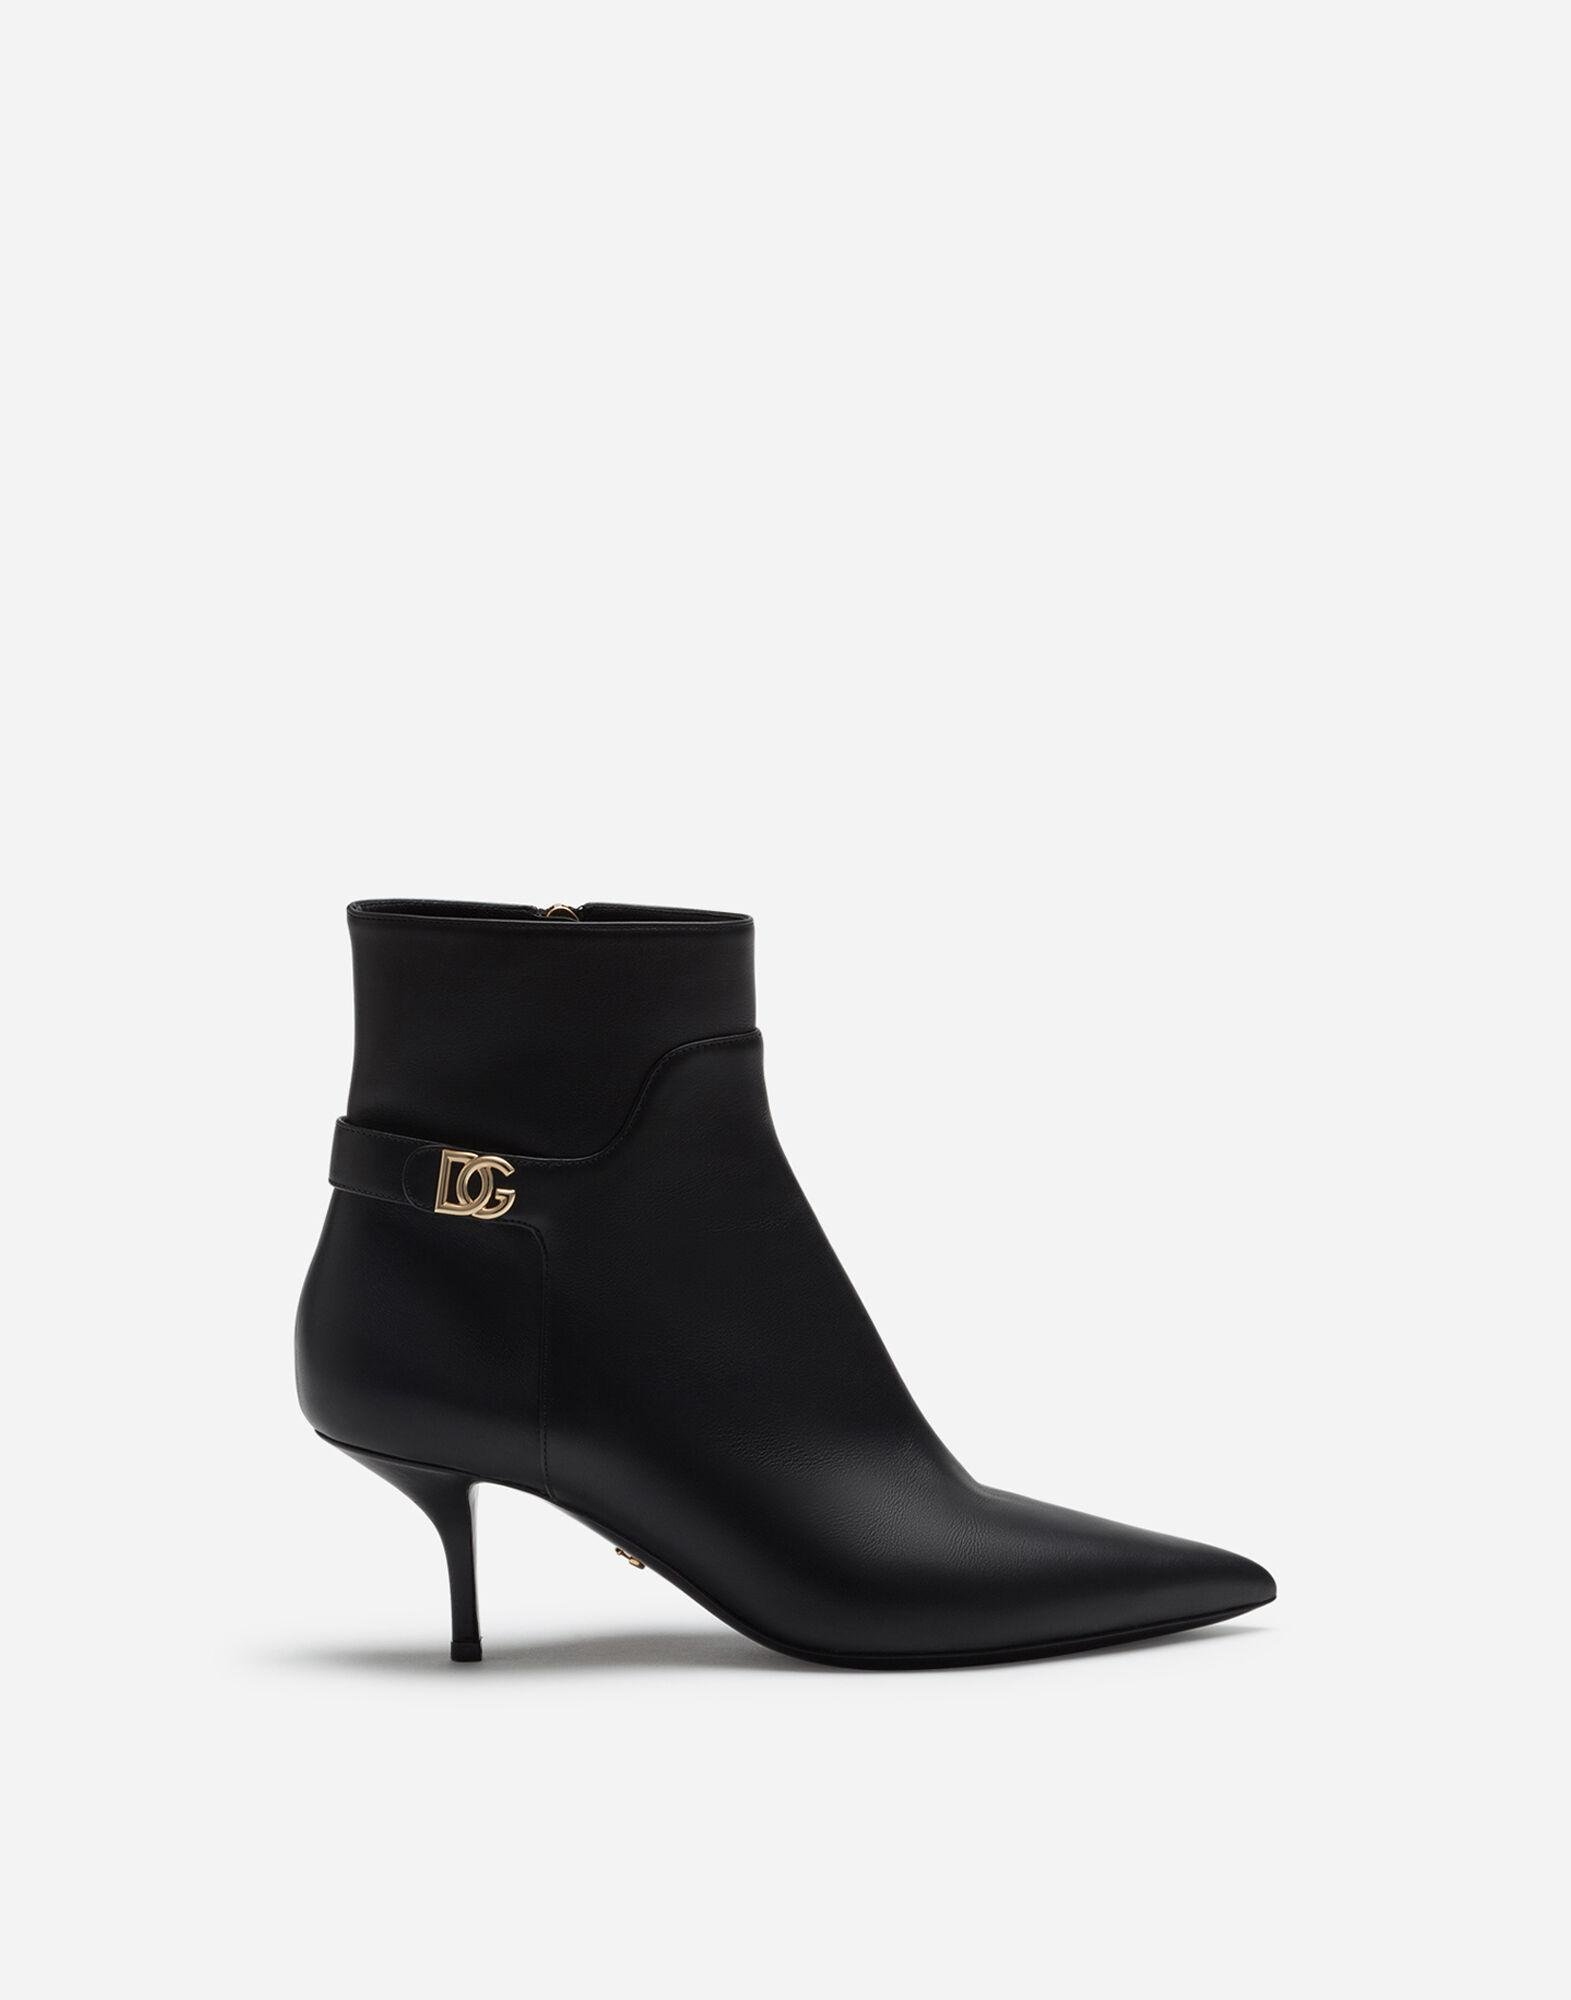 Calfskin ankle boots with DG logo